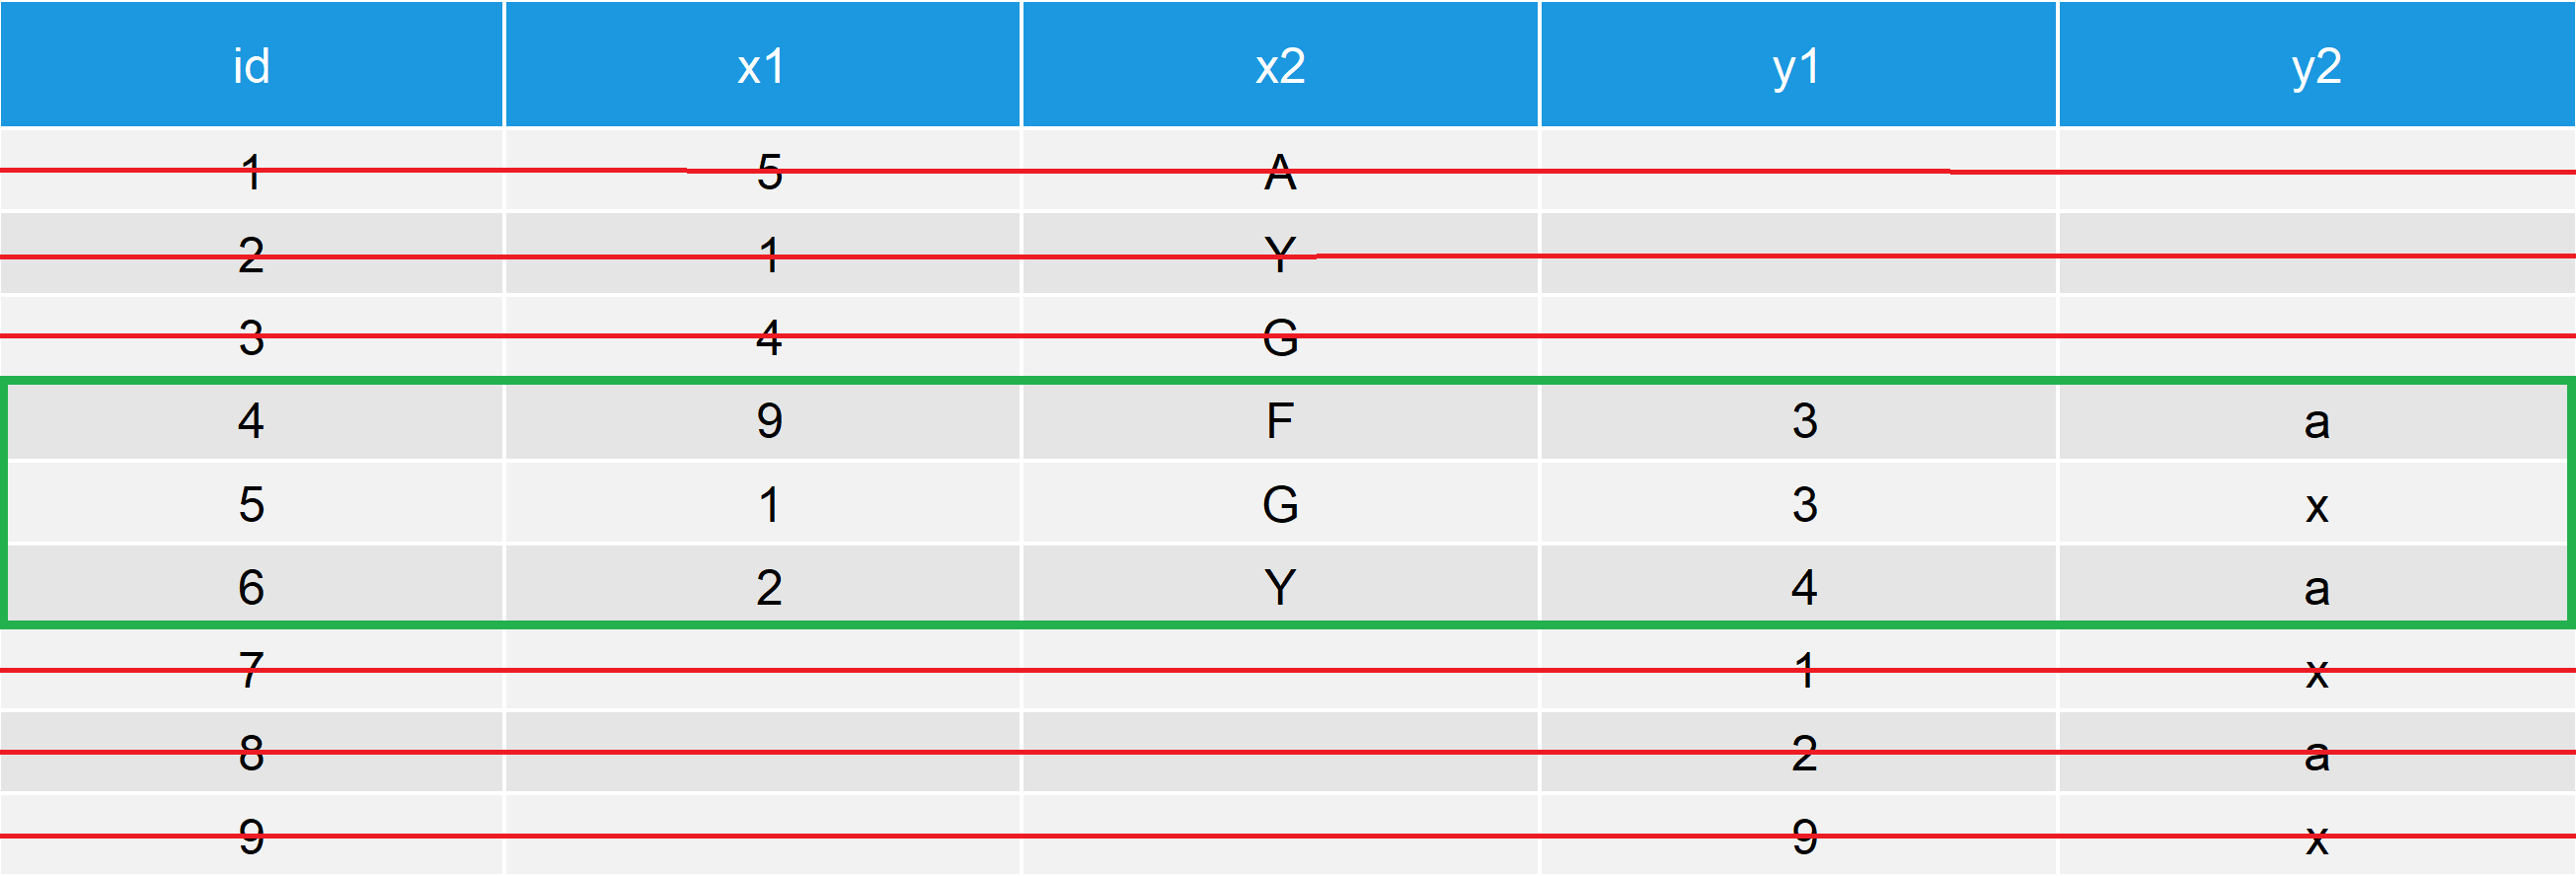 merge in r two data sets